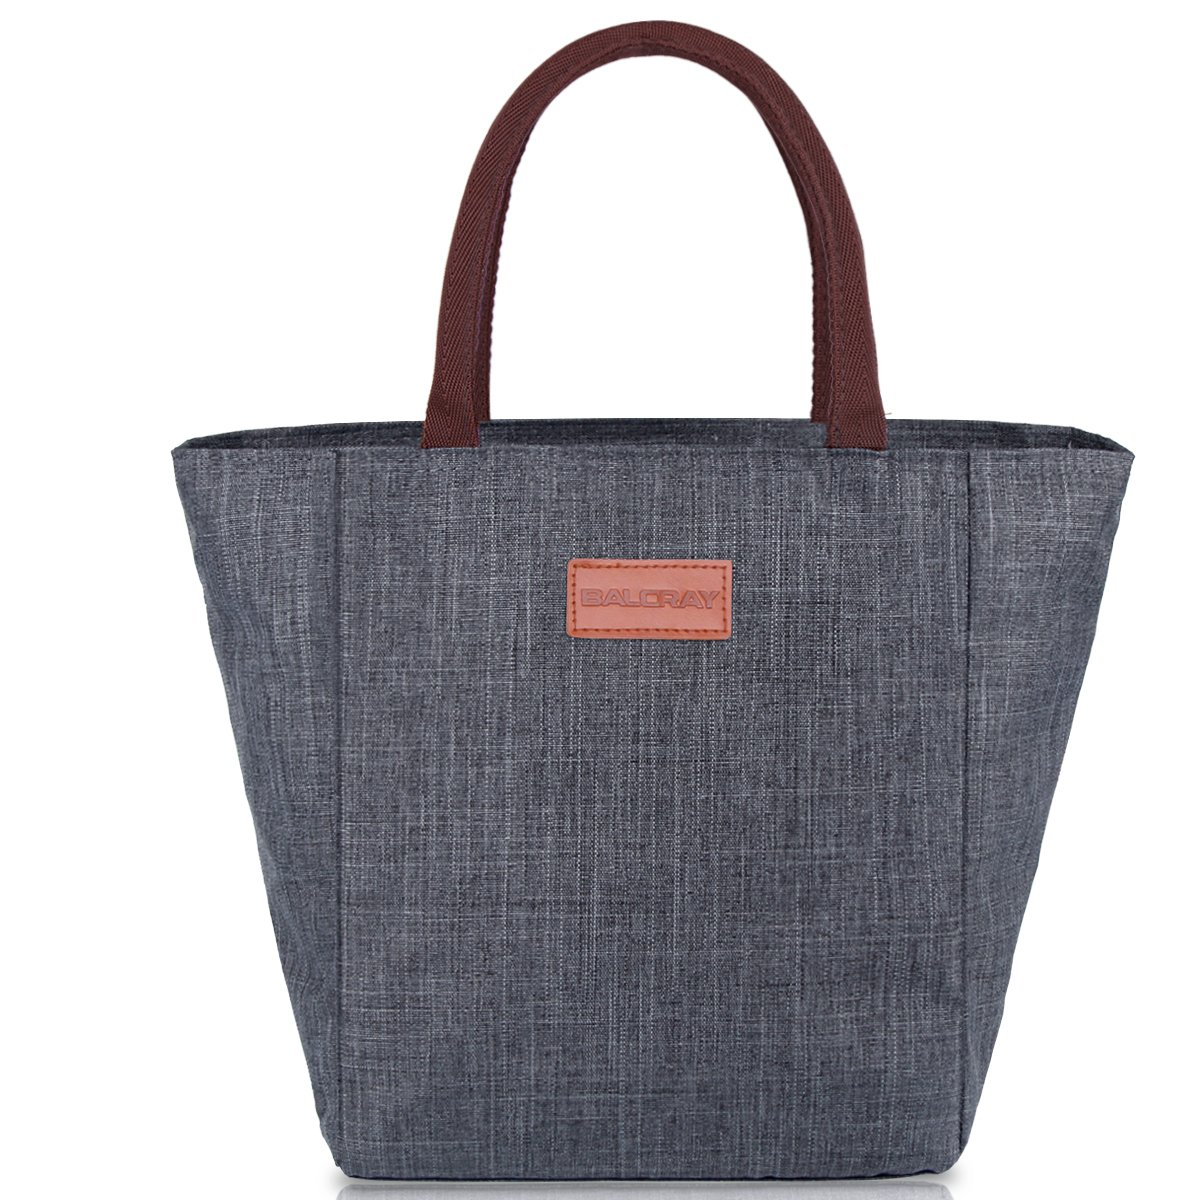 BALORAY Lunch Bag Tote Bag Lunch Organizer Lunch Holder Lunch Container (G-199L Grey) A-15